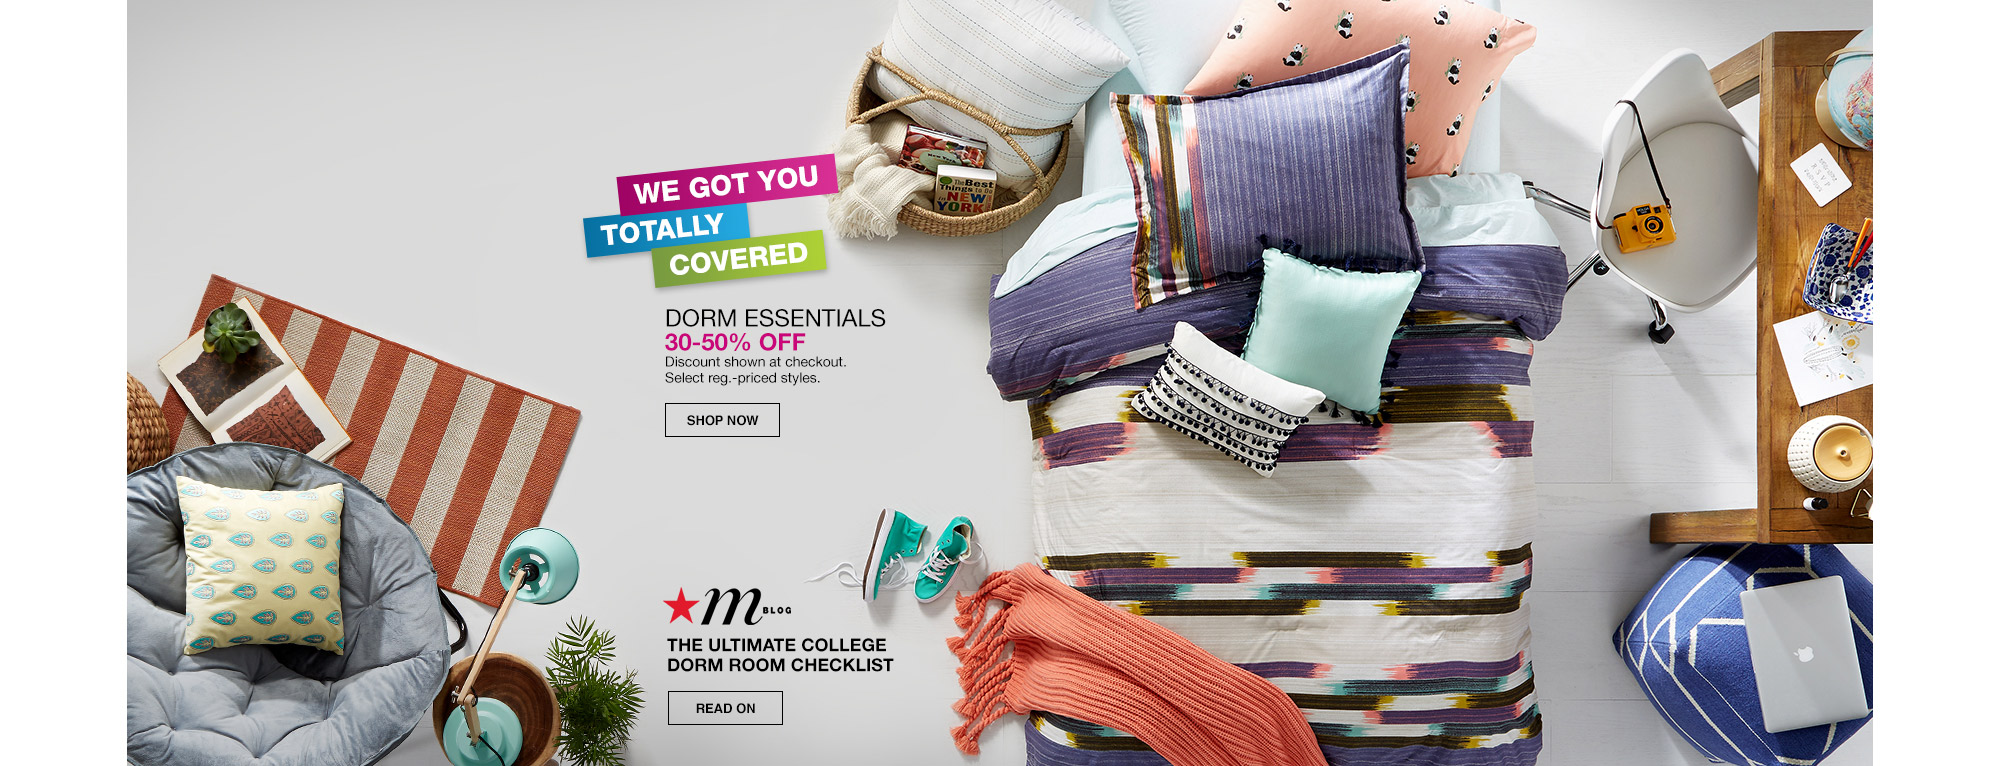 we got you totally covered. dorm essentials. 30 percent to 50 percent off. discount shown at checkout. select regular priced styles. mblog. the ultimate college dorm room checklist.